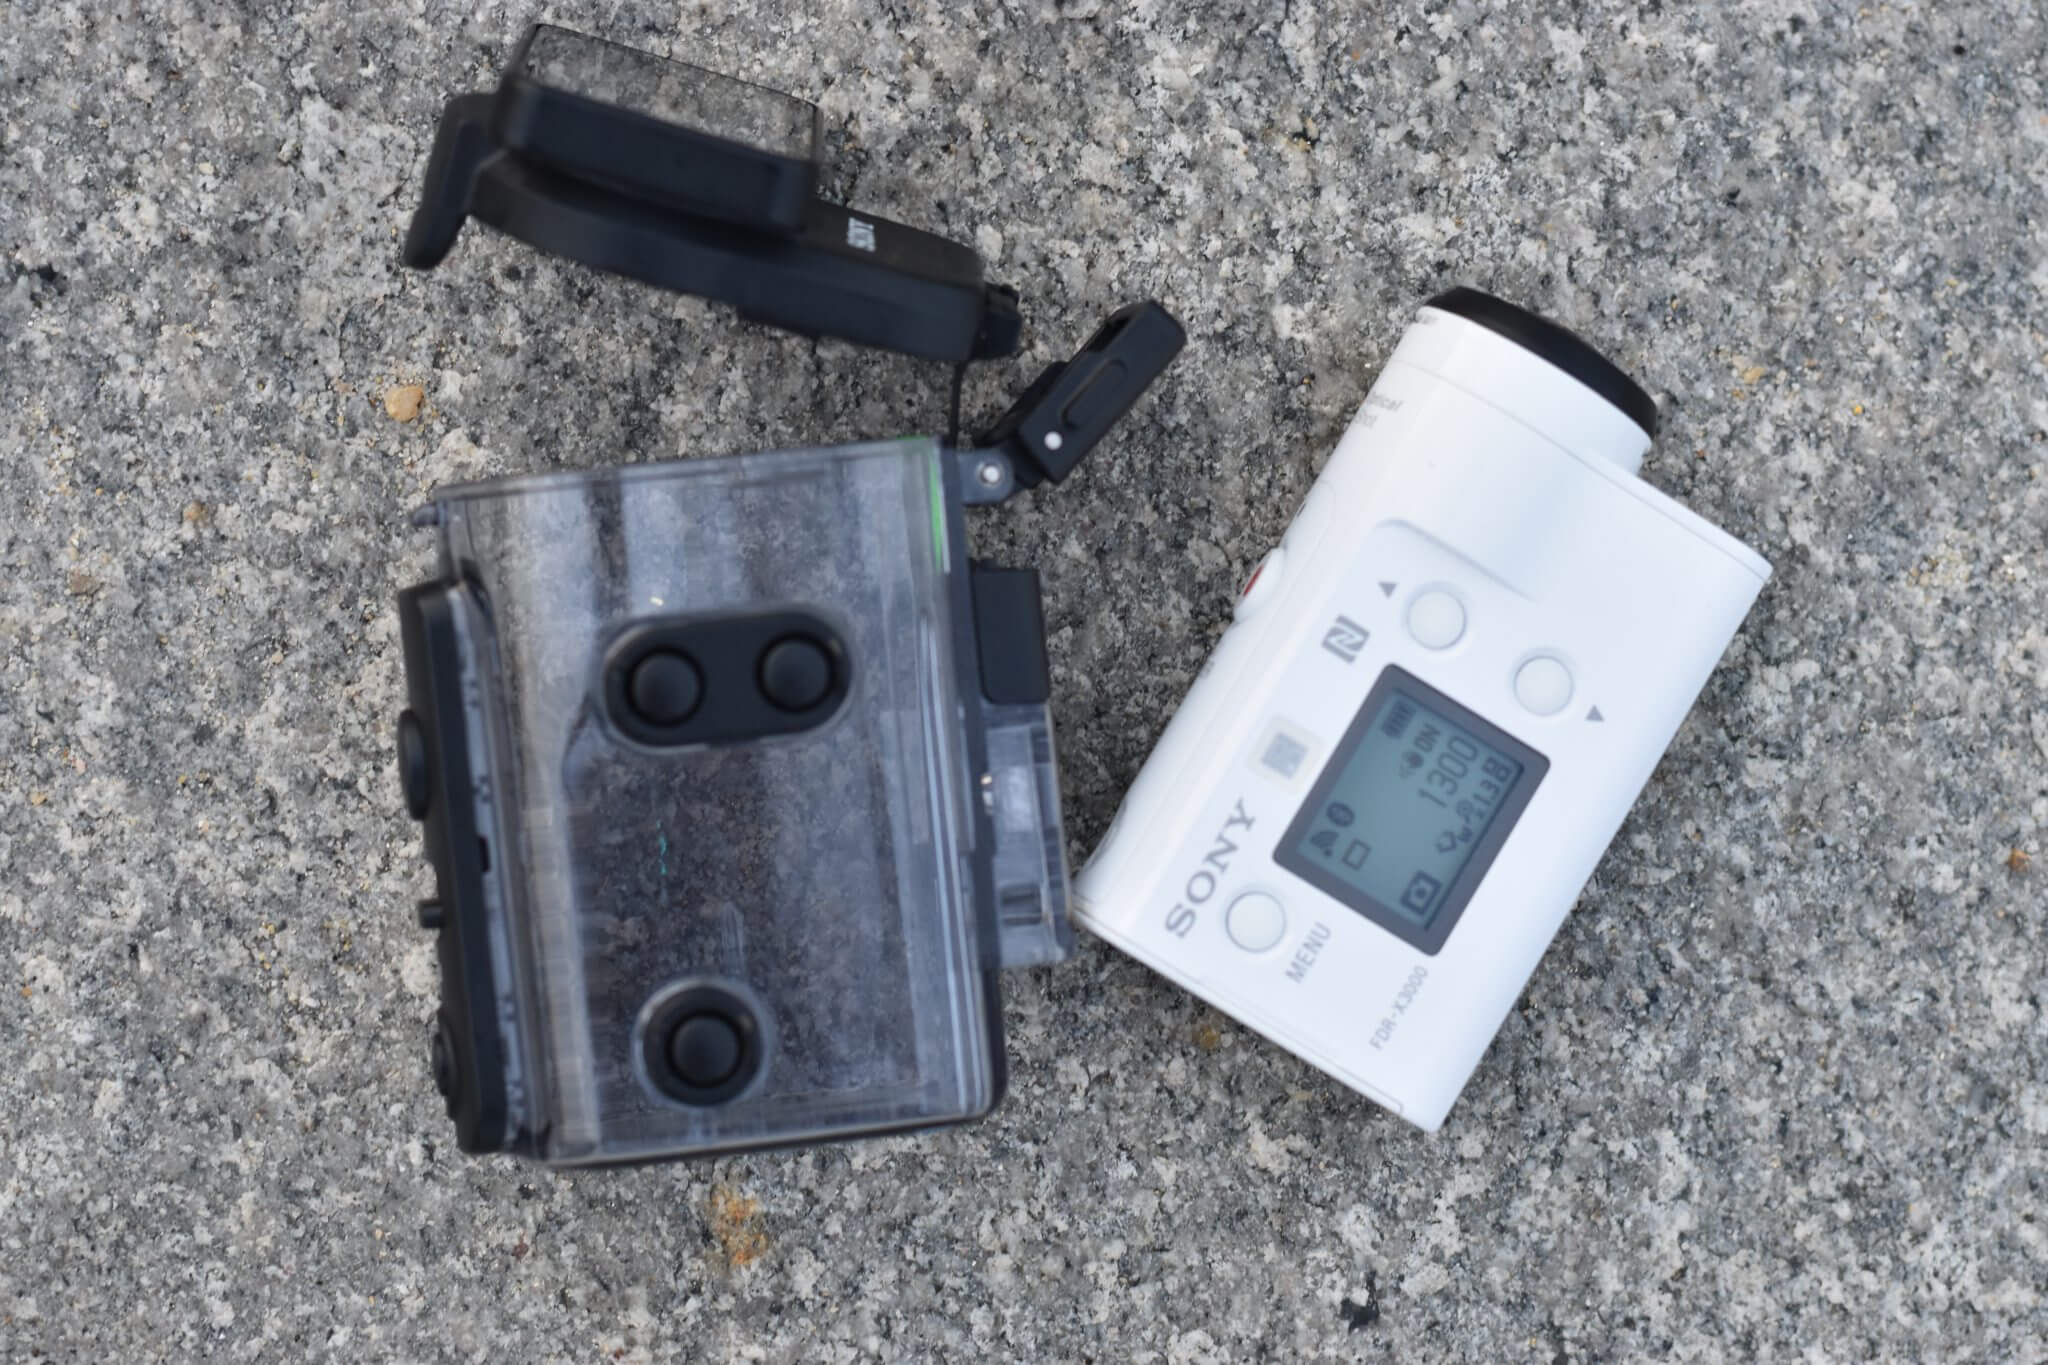 Sony FDR-X3000: Waterproof Case